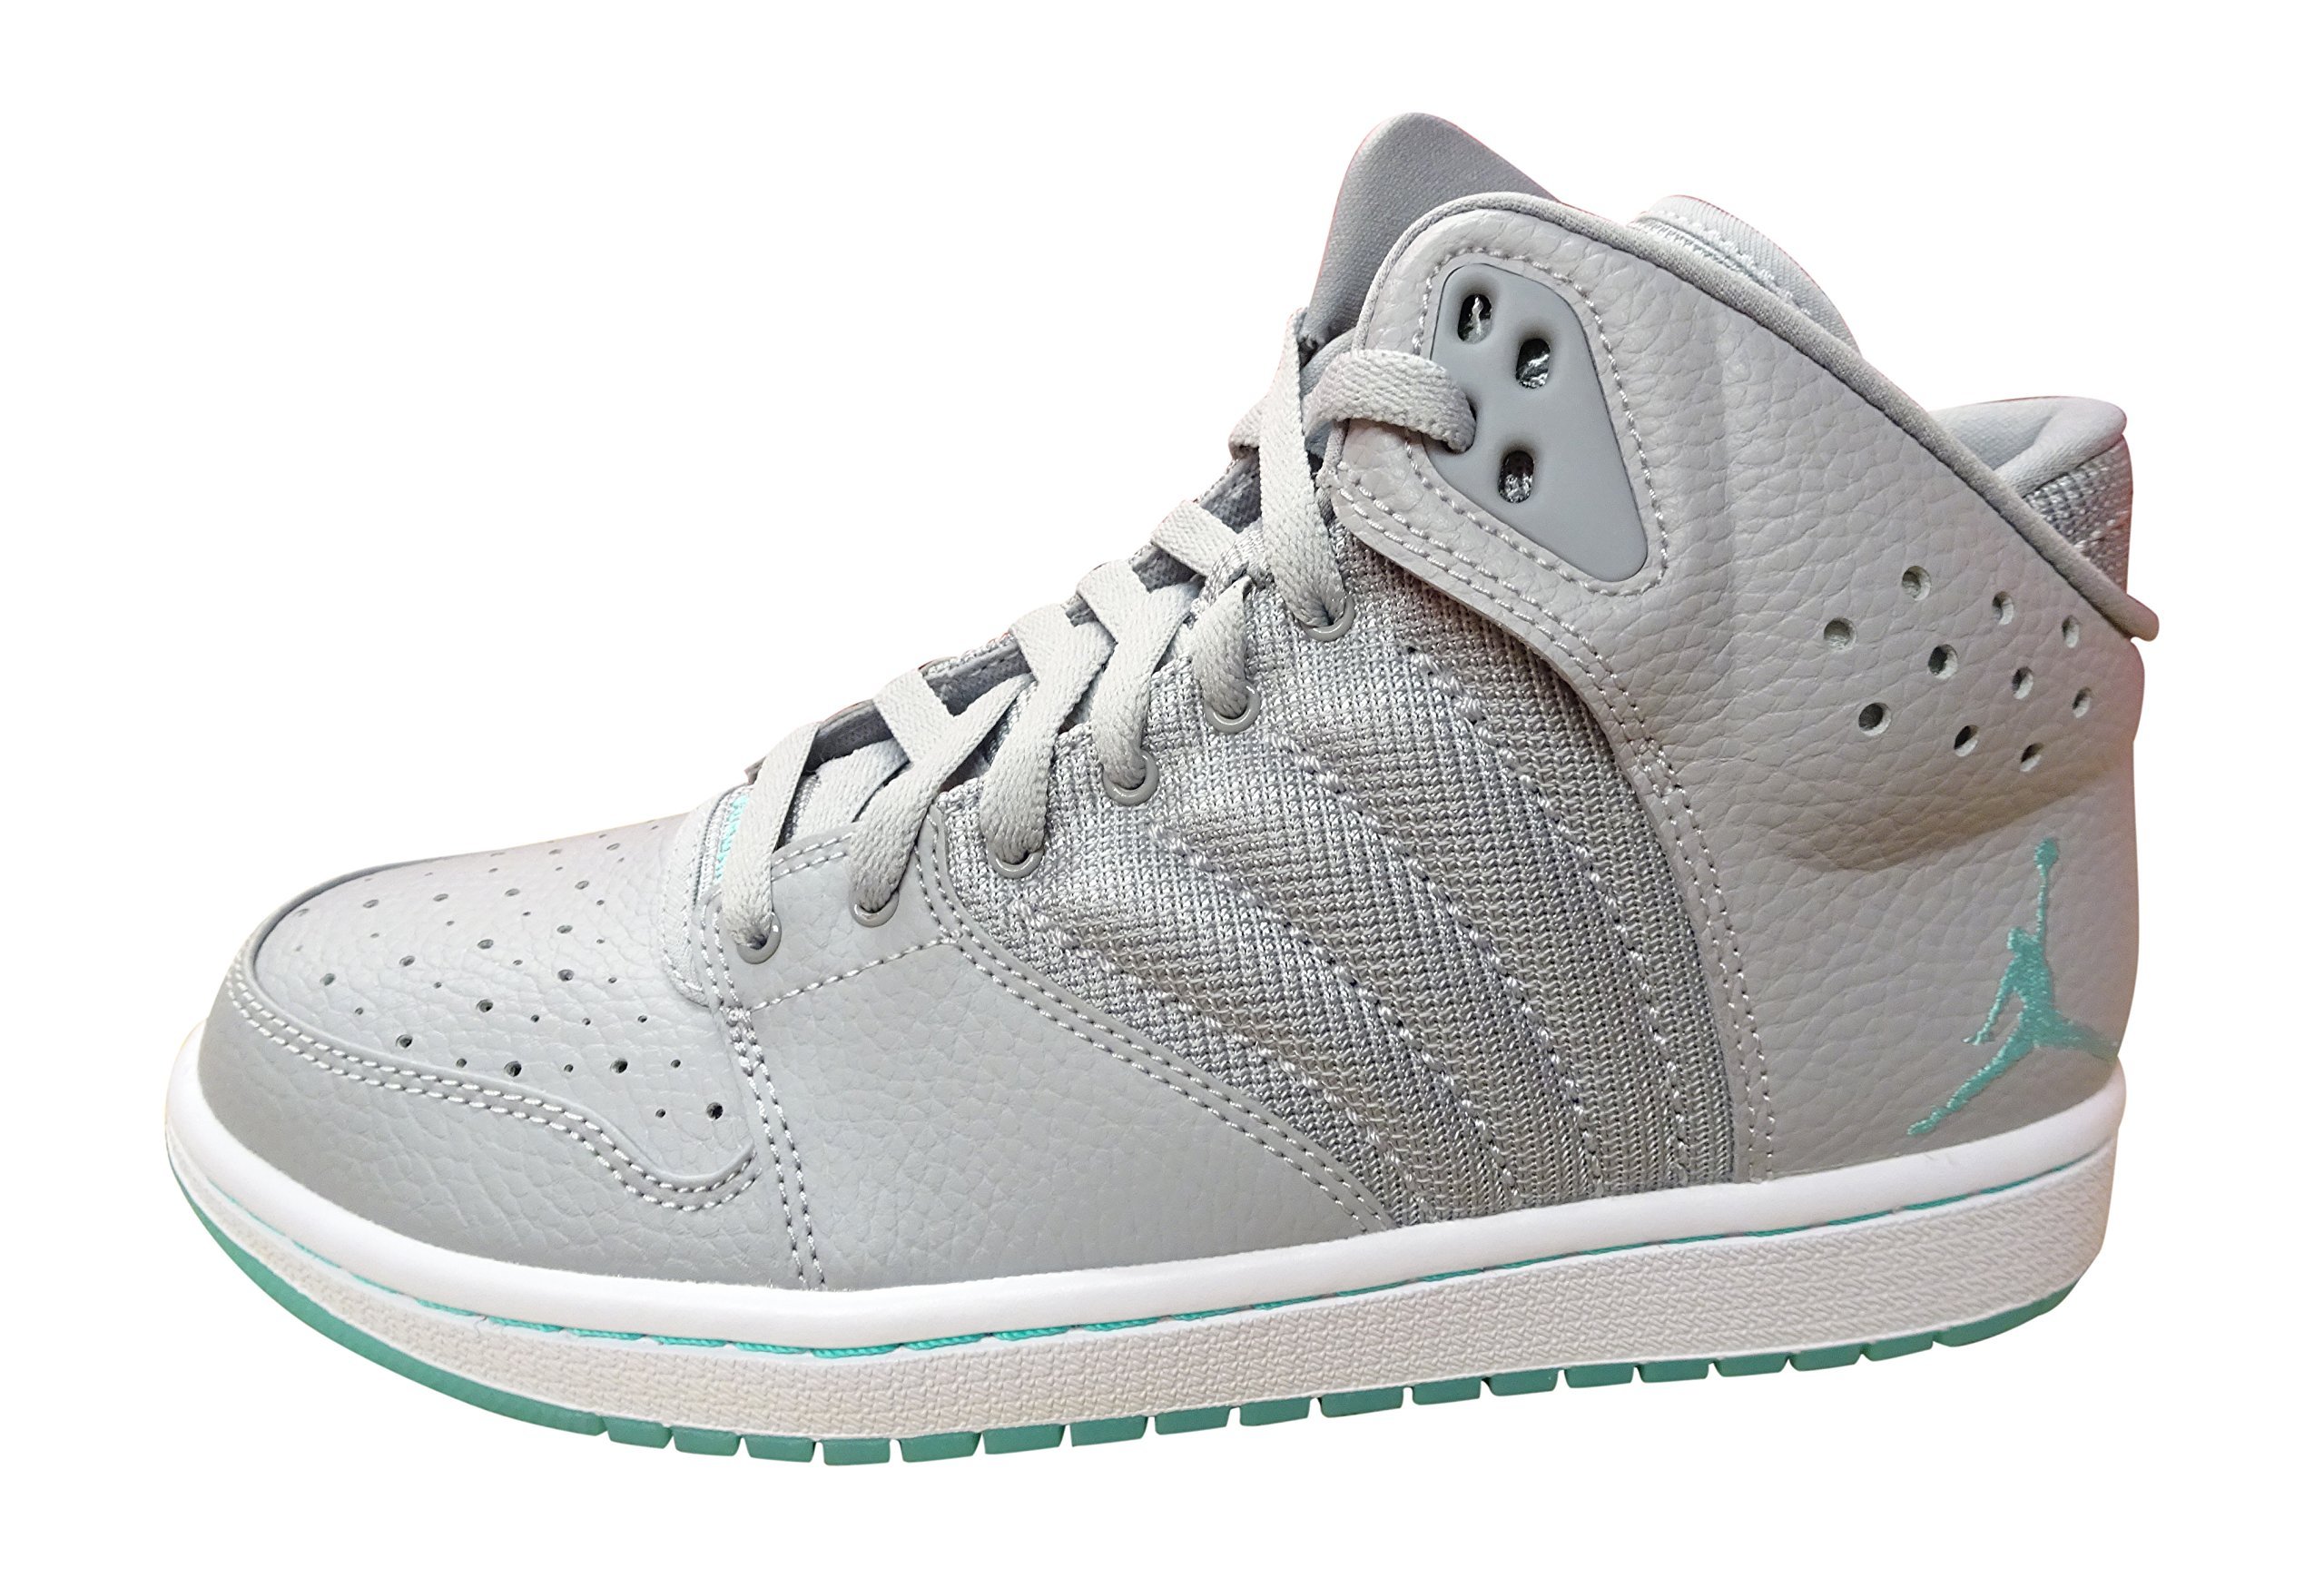 save off 9a81a 29693 Galleon - Nike Air Jordan 1 Flight 4 PREM Mens Hi Top Basketball Trainers  838818 Sneakers Shoes (US 8.5, Wolf Grey Turquoise White 031)